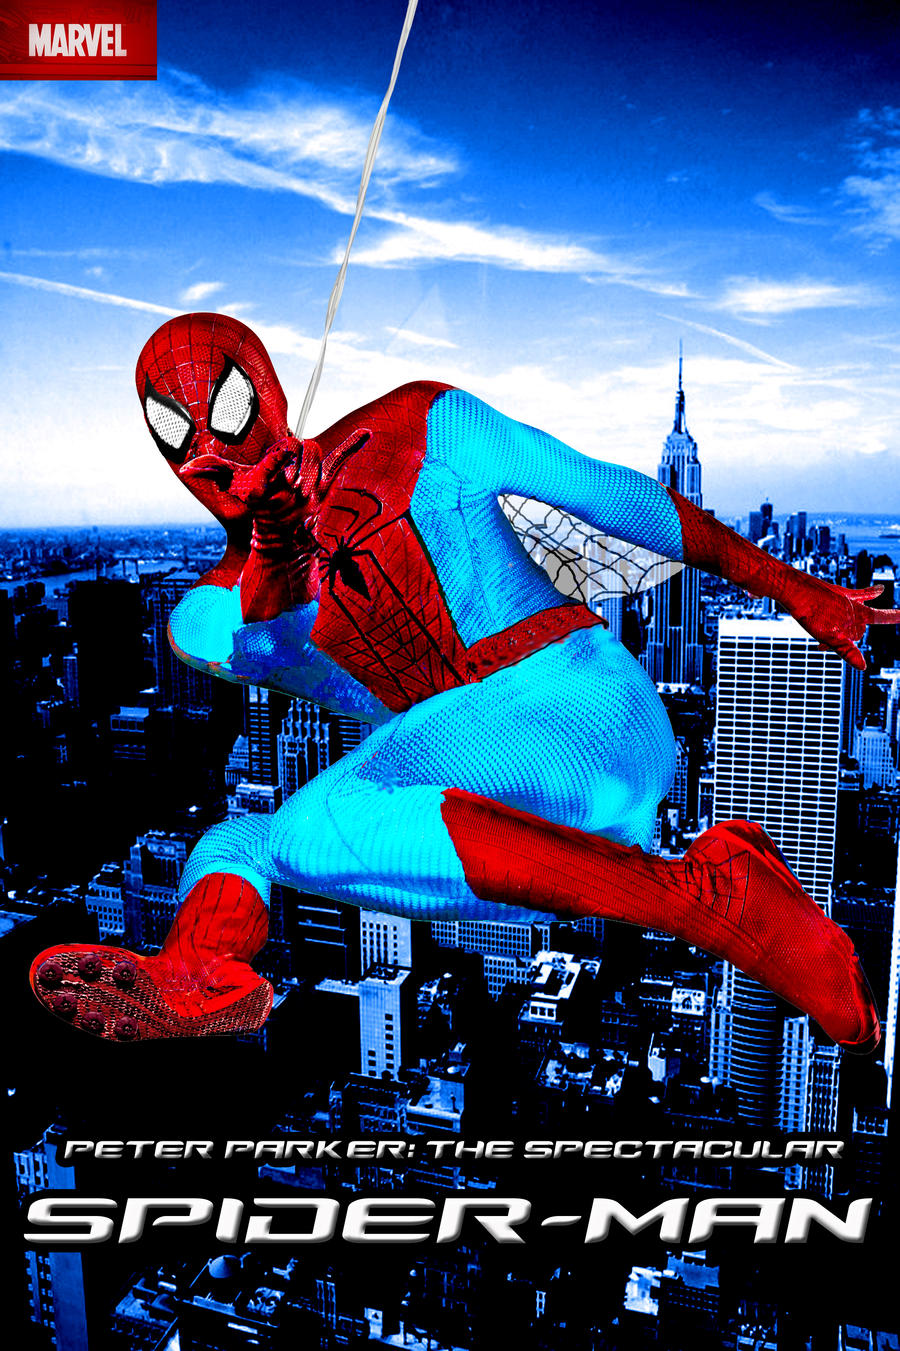 Peter Parker The Spectacular Spider Man Poster 2 By Stick 11